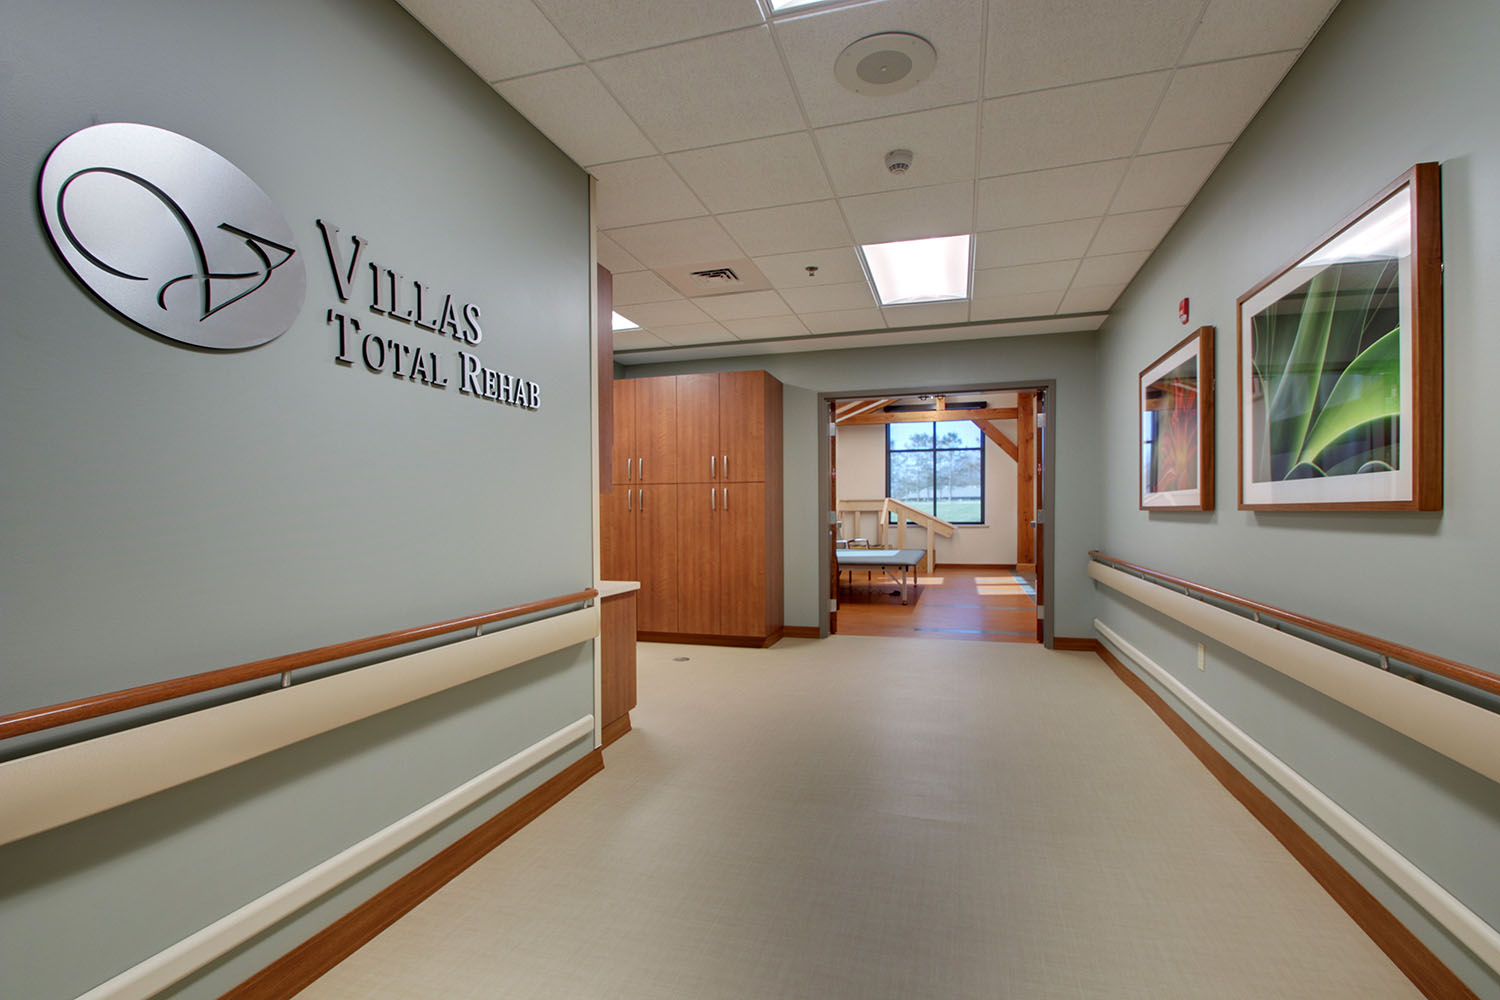 Physical Therapy Month at The Villas Senior Care Community